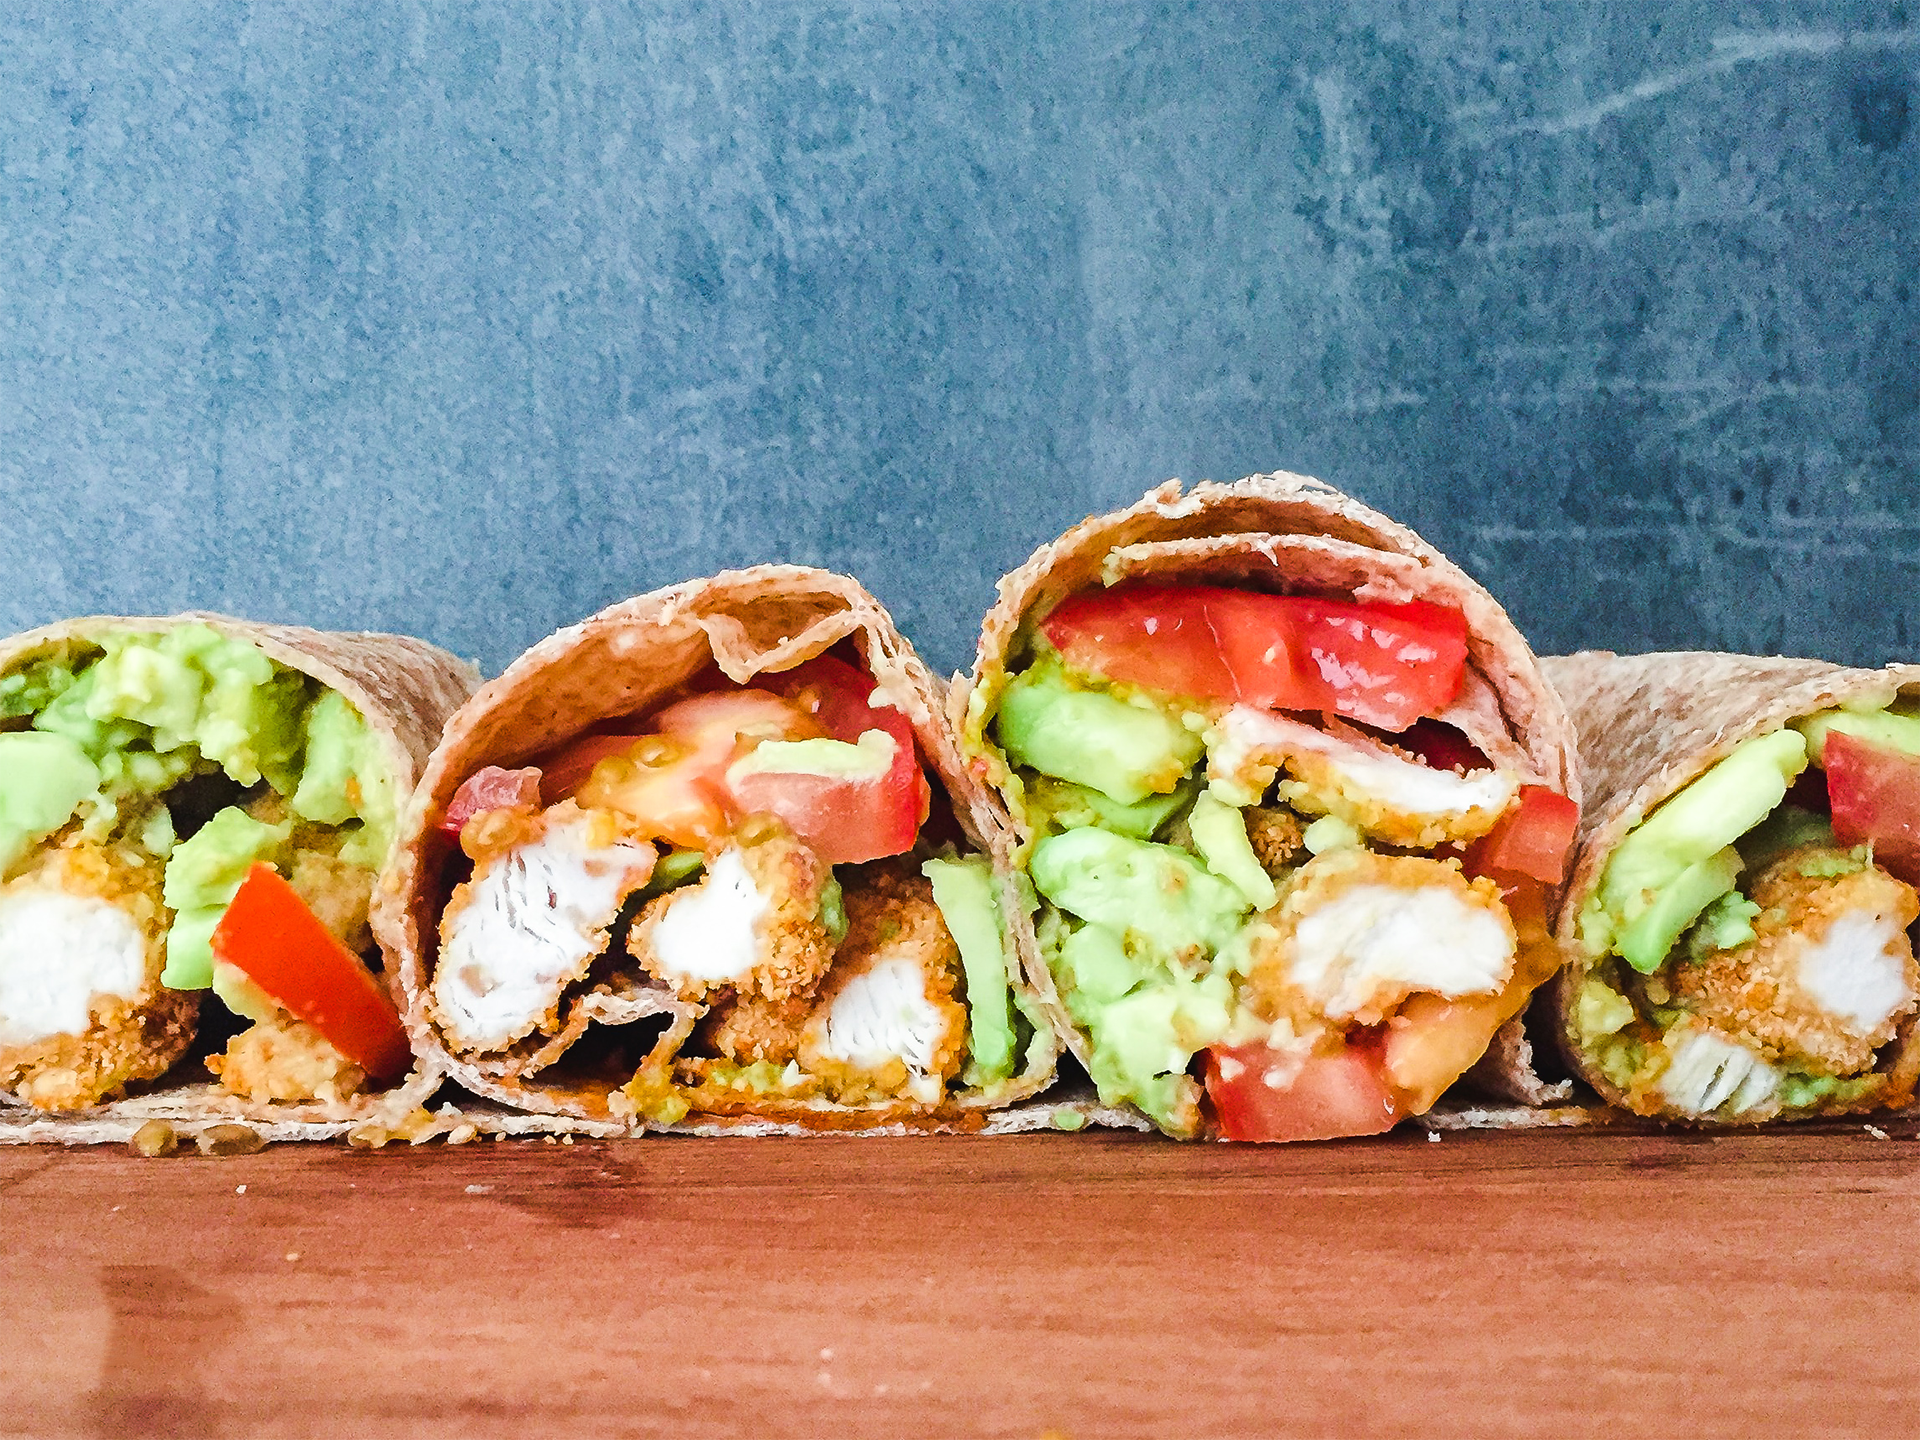 High Protein Wholemeal Wrap with Tomato, Avocado and Oven Baked Crispy Chicken Preview